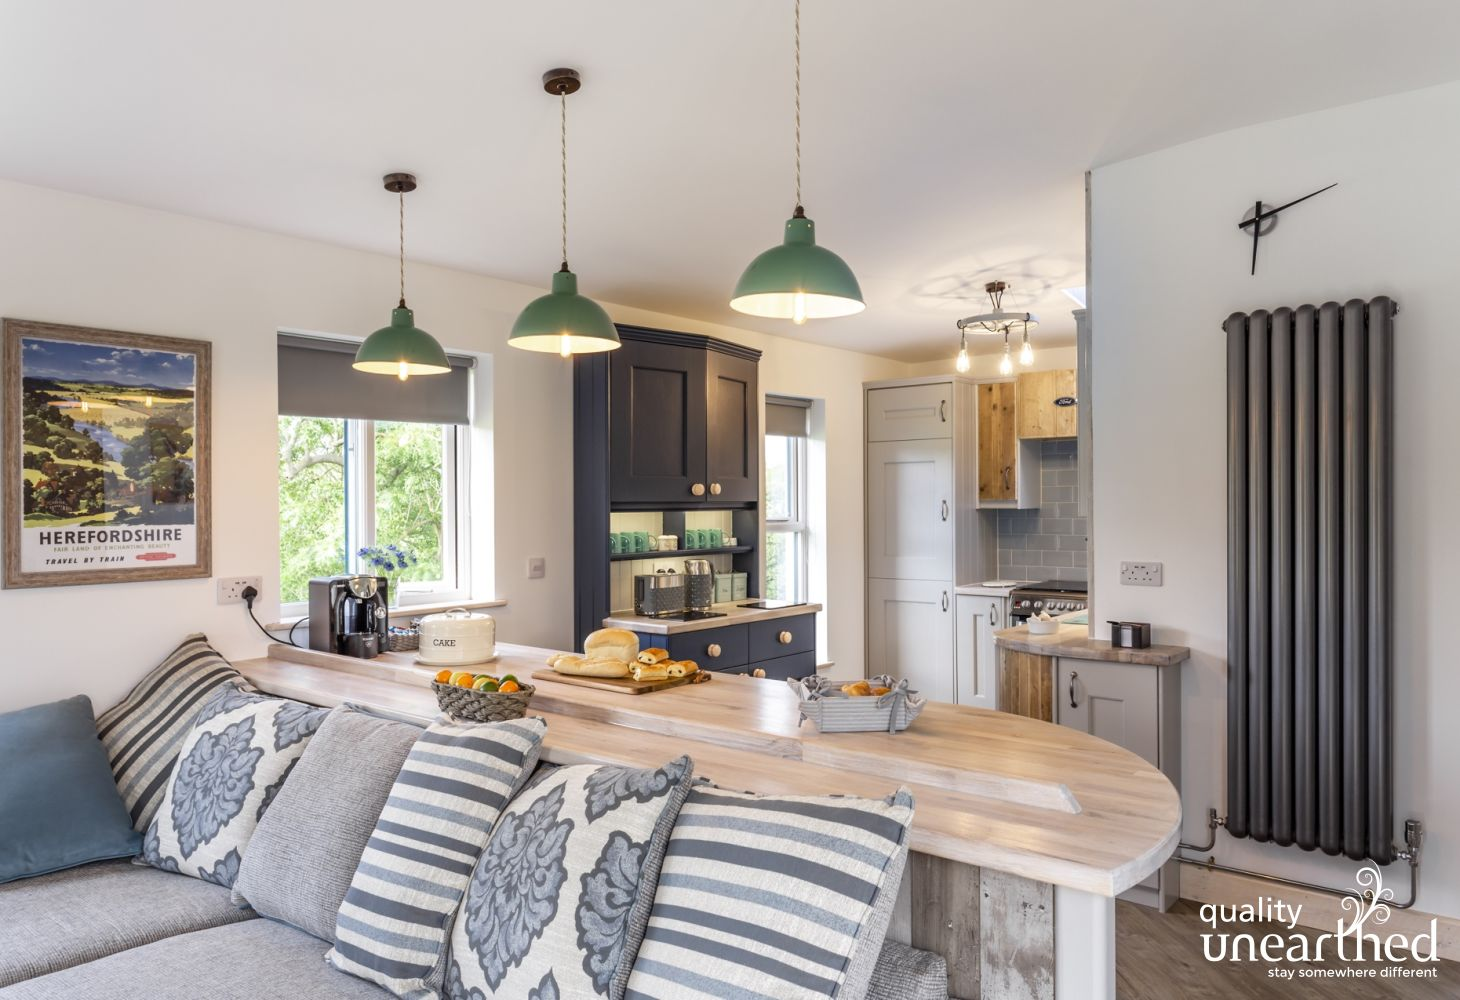 The open plan kitchen & living room at this wooden lodge has a stylish contemporary look